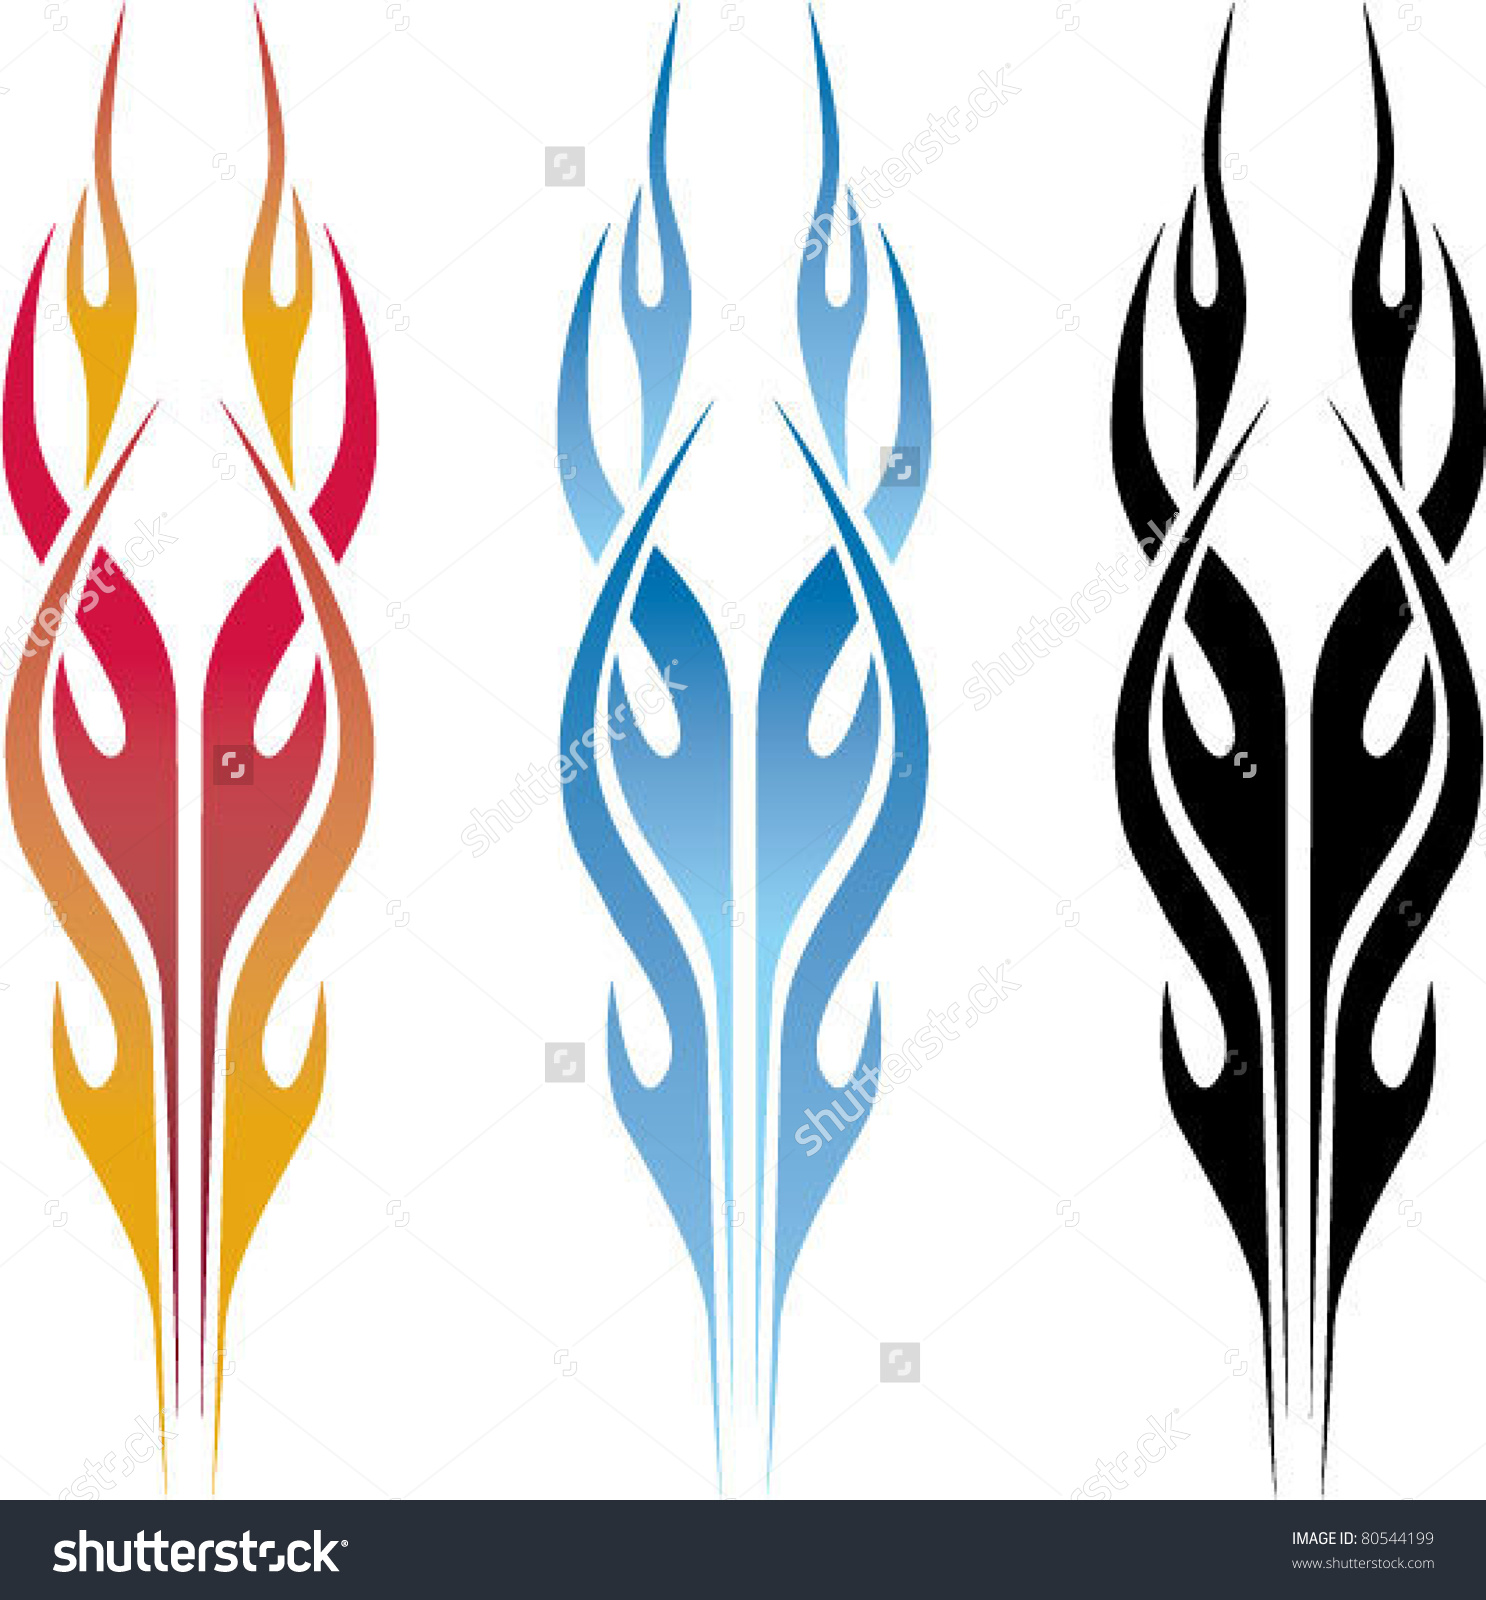 Flames clipart tribal Flames flames Search letter clipart